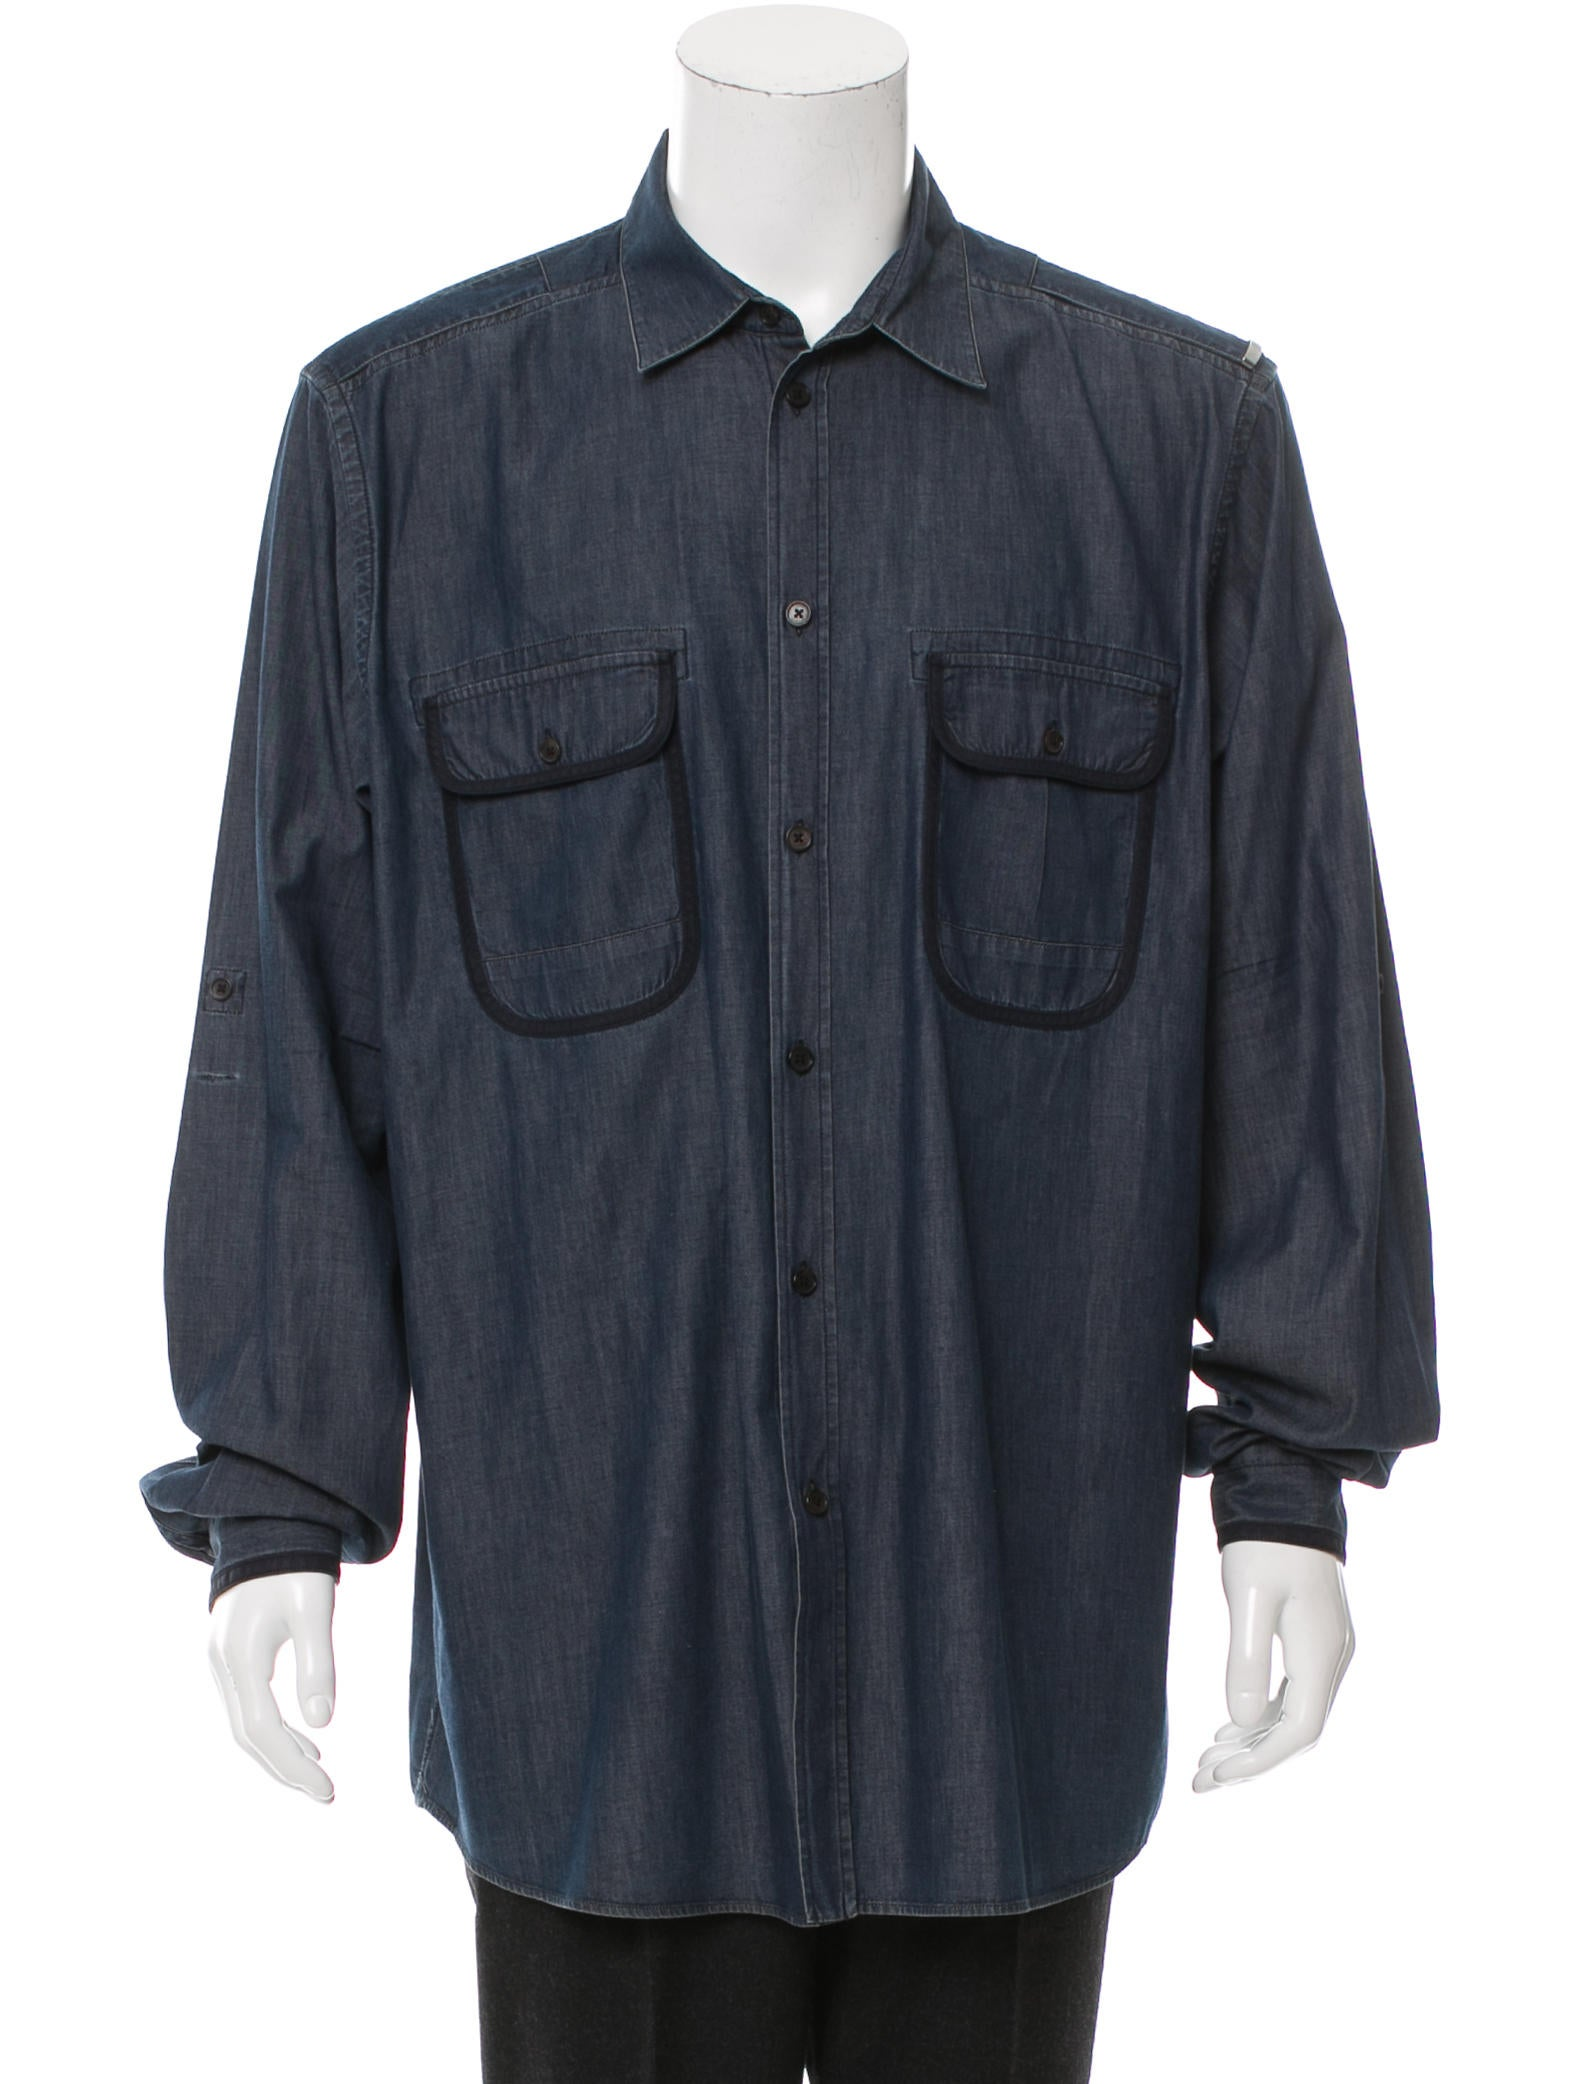 louis vuitton chambray button up shirt clothing